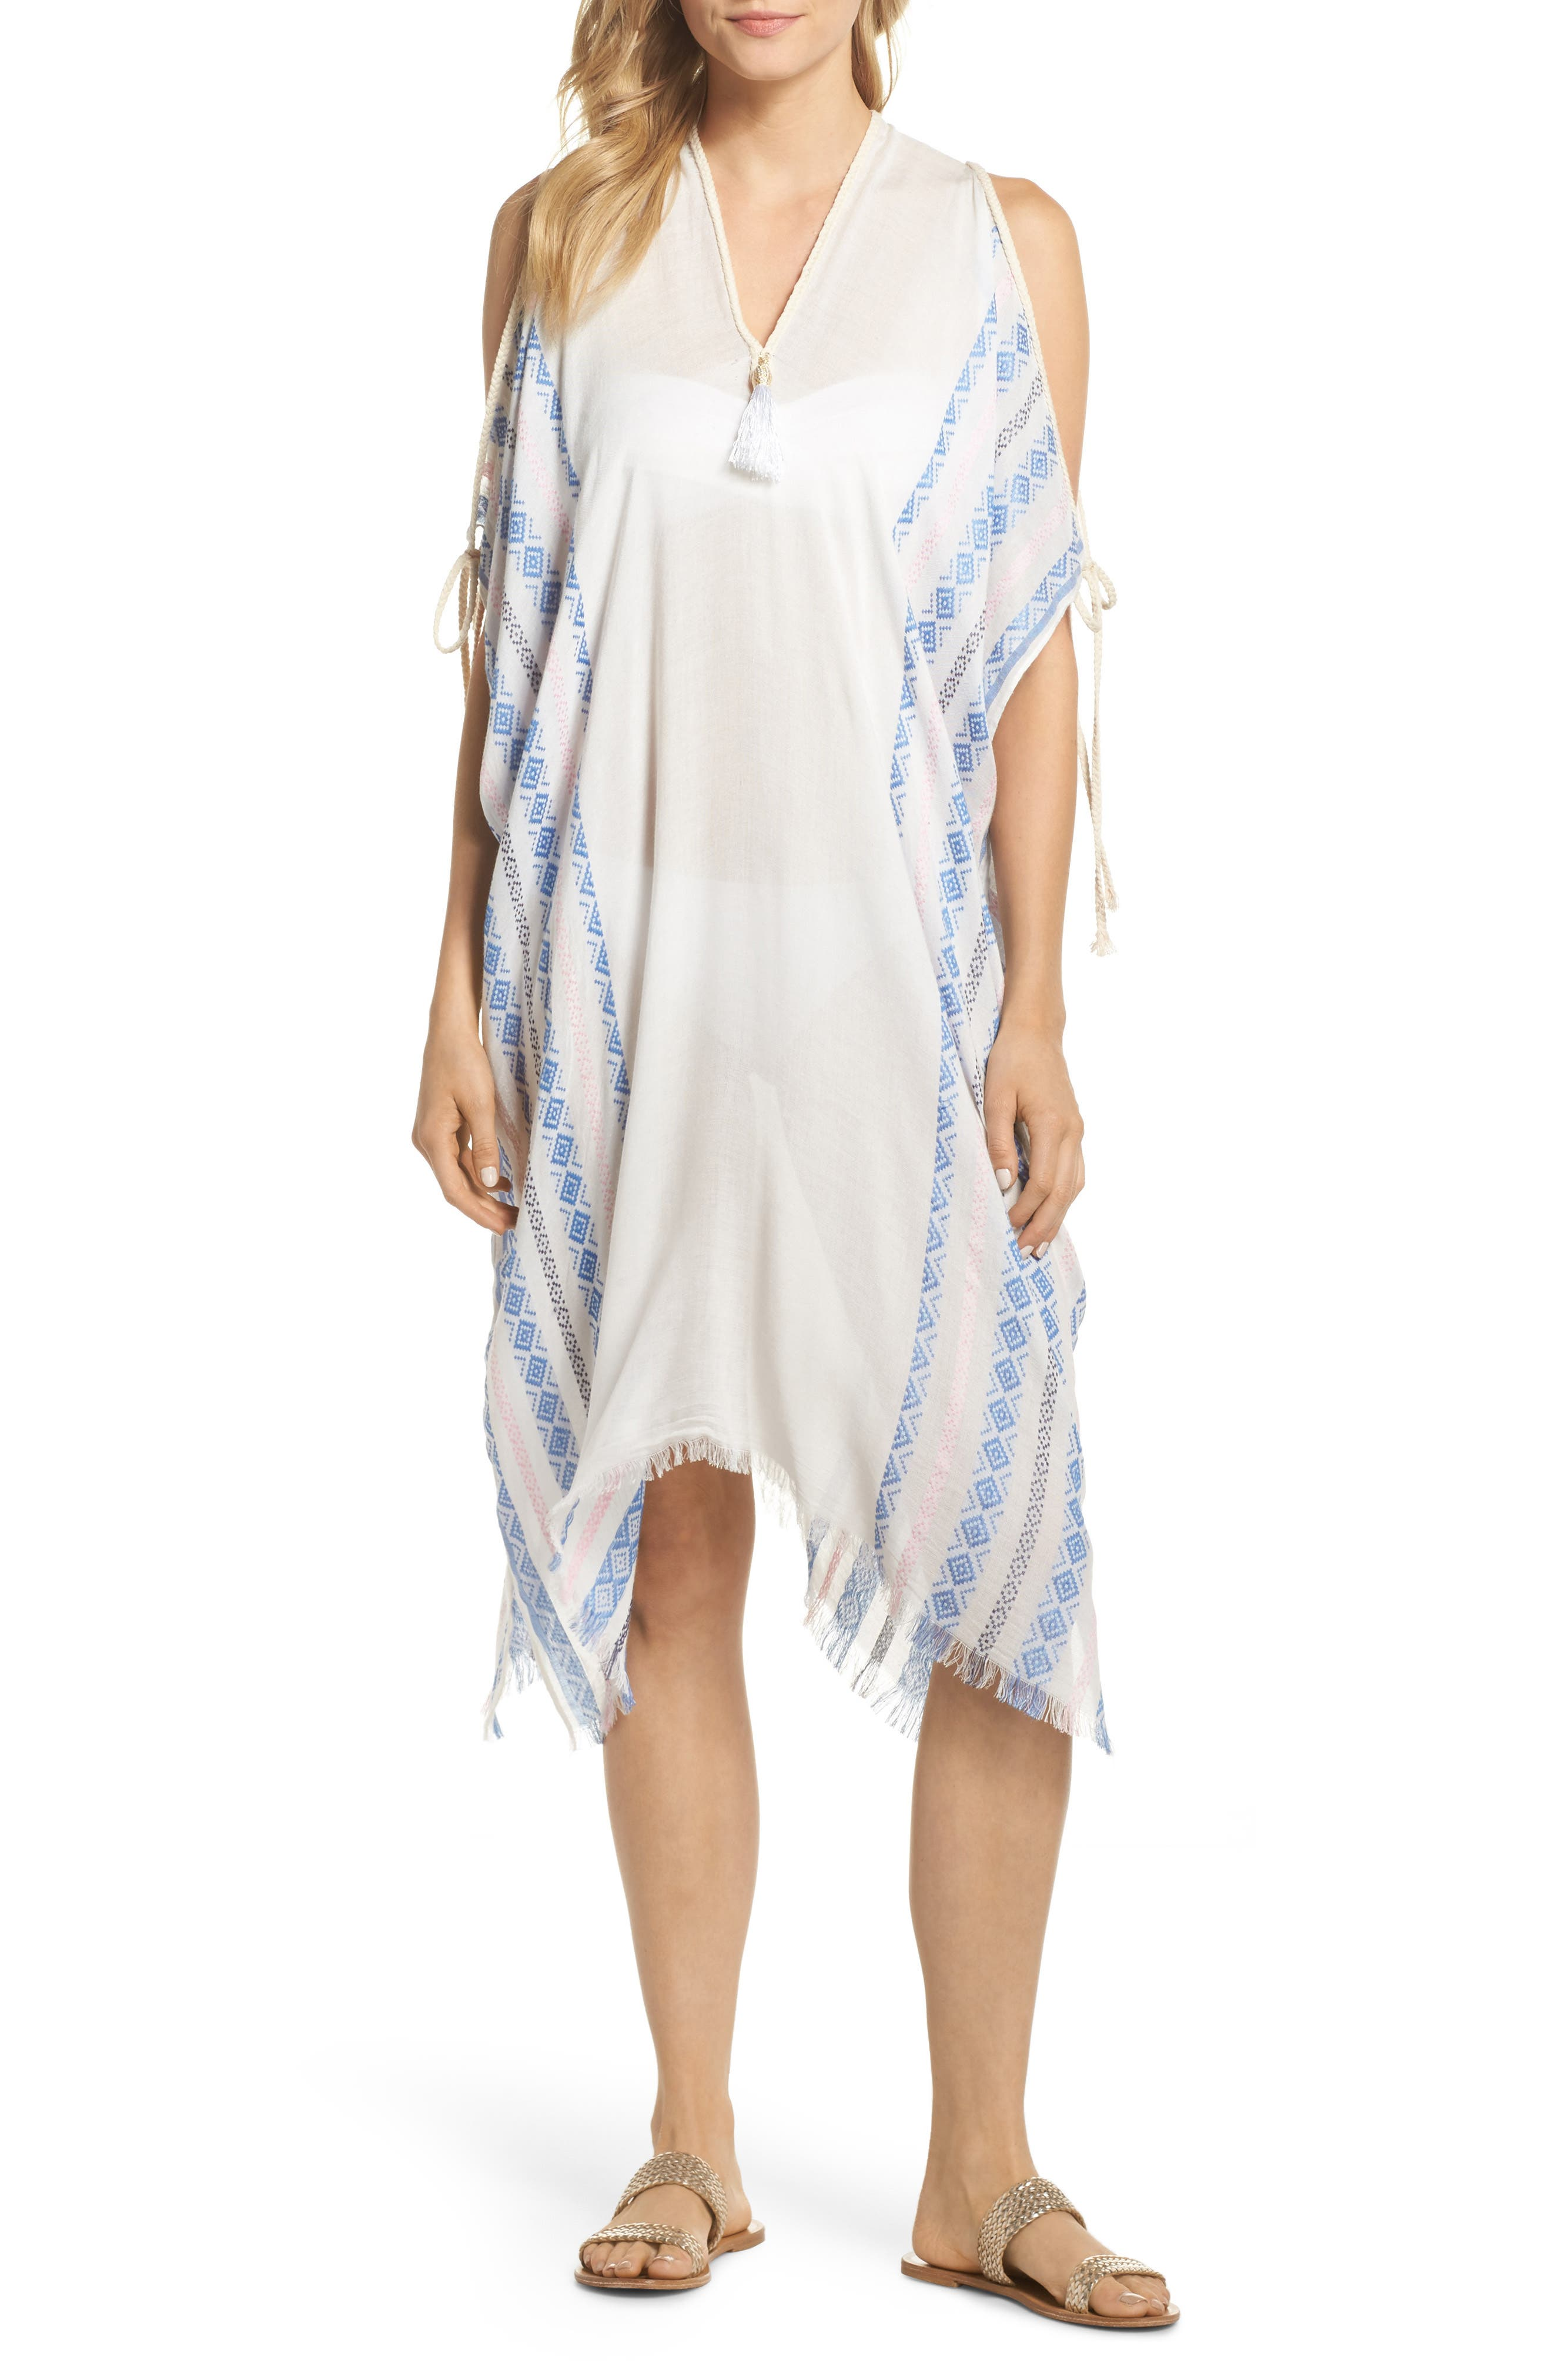 Alternate Image 1 Selected - Pool to Party Anytime Cover-Up Caftan